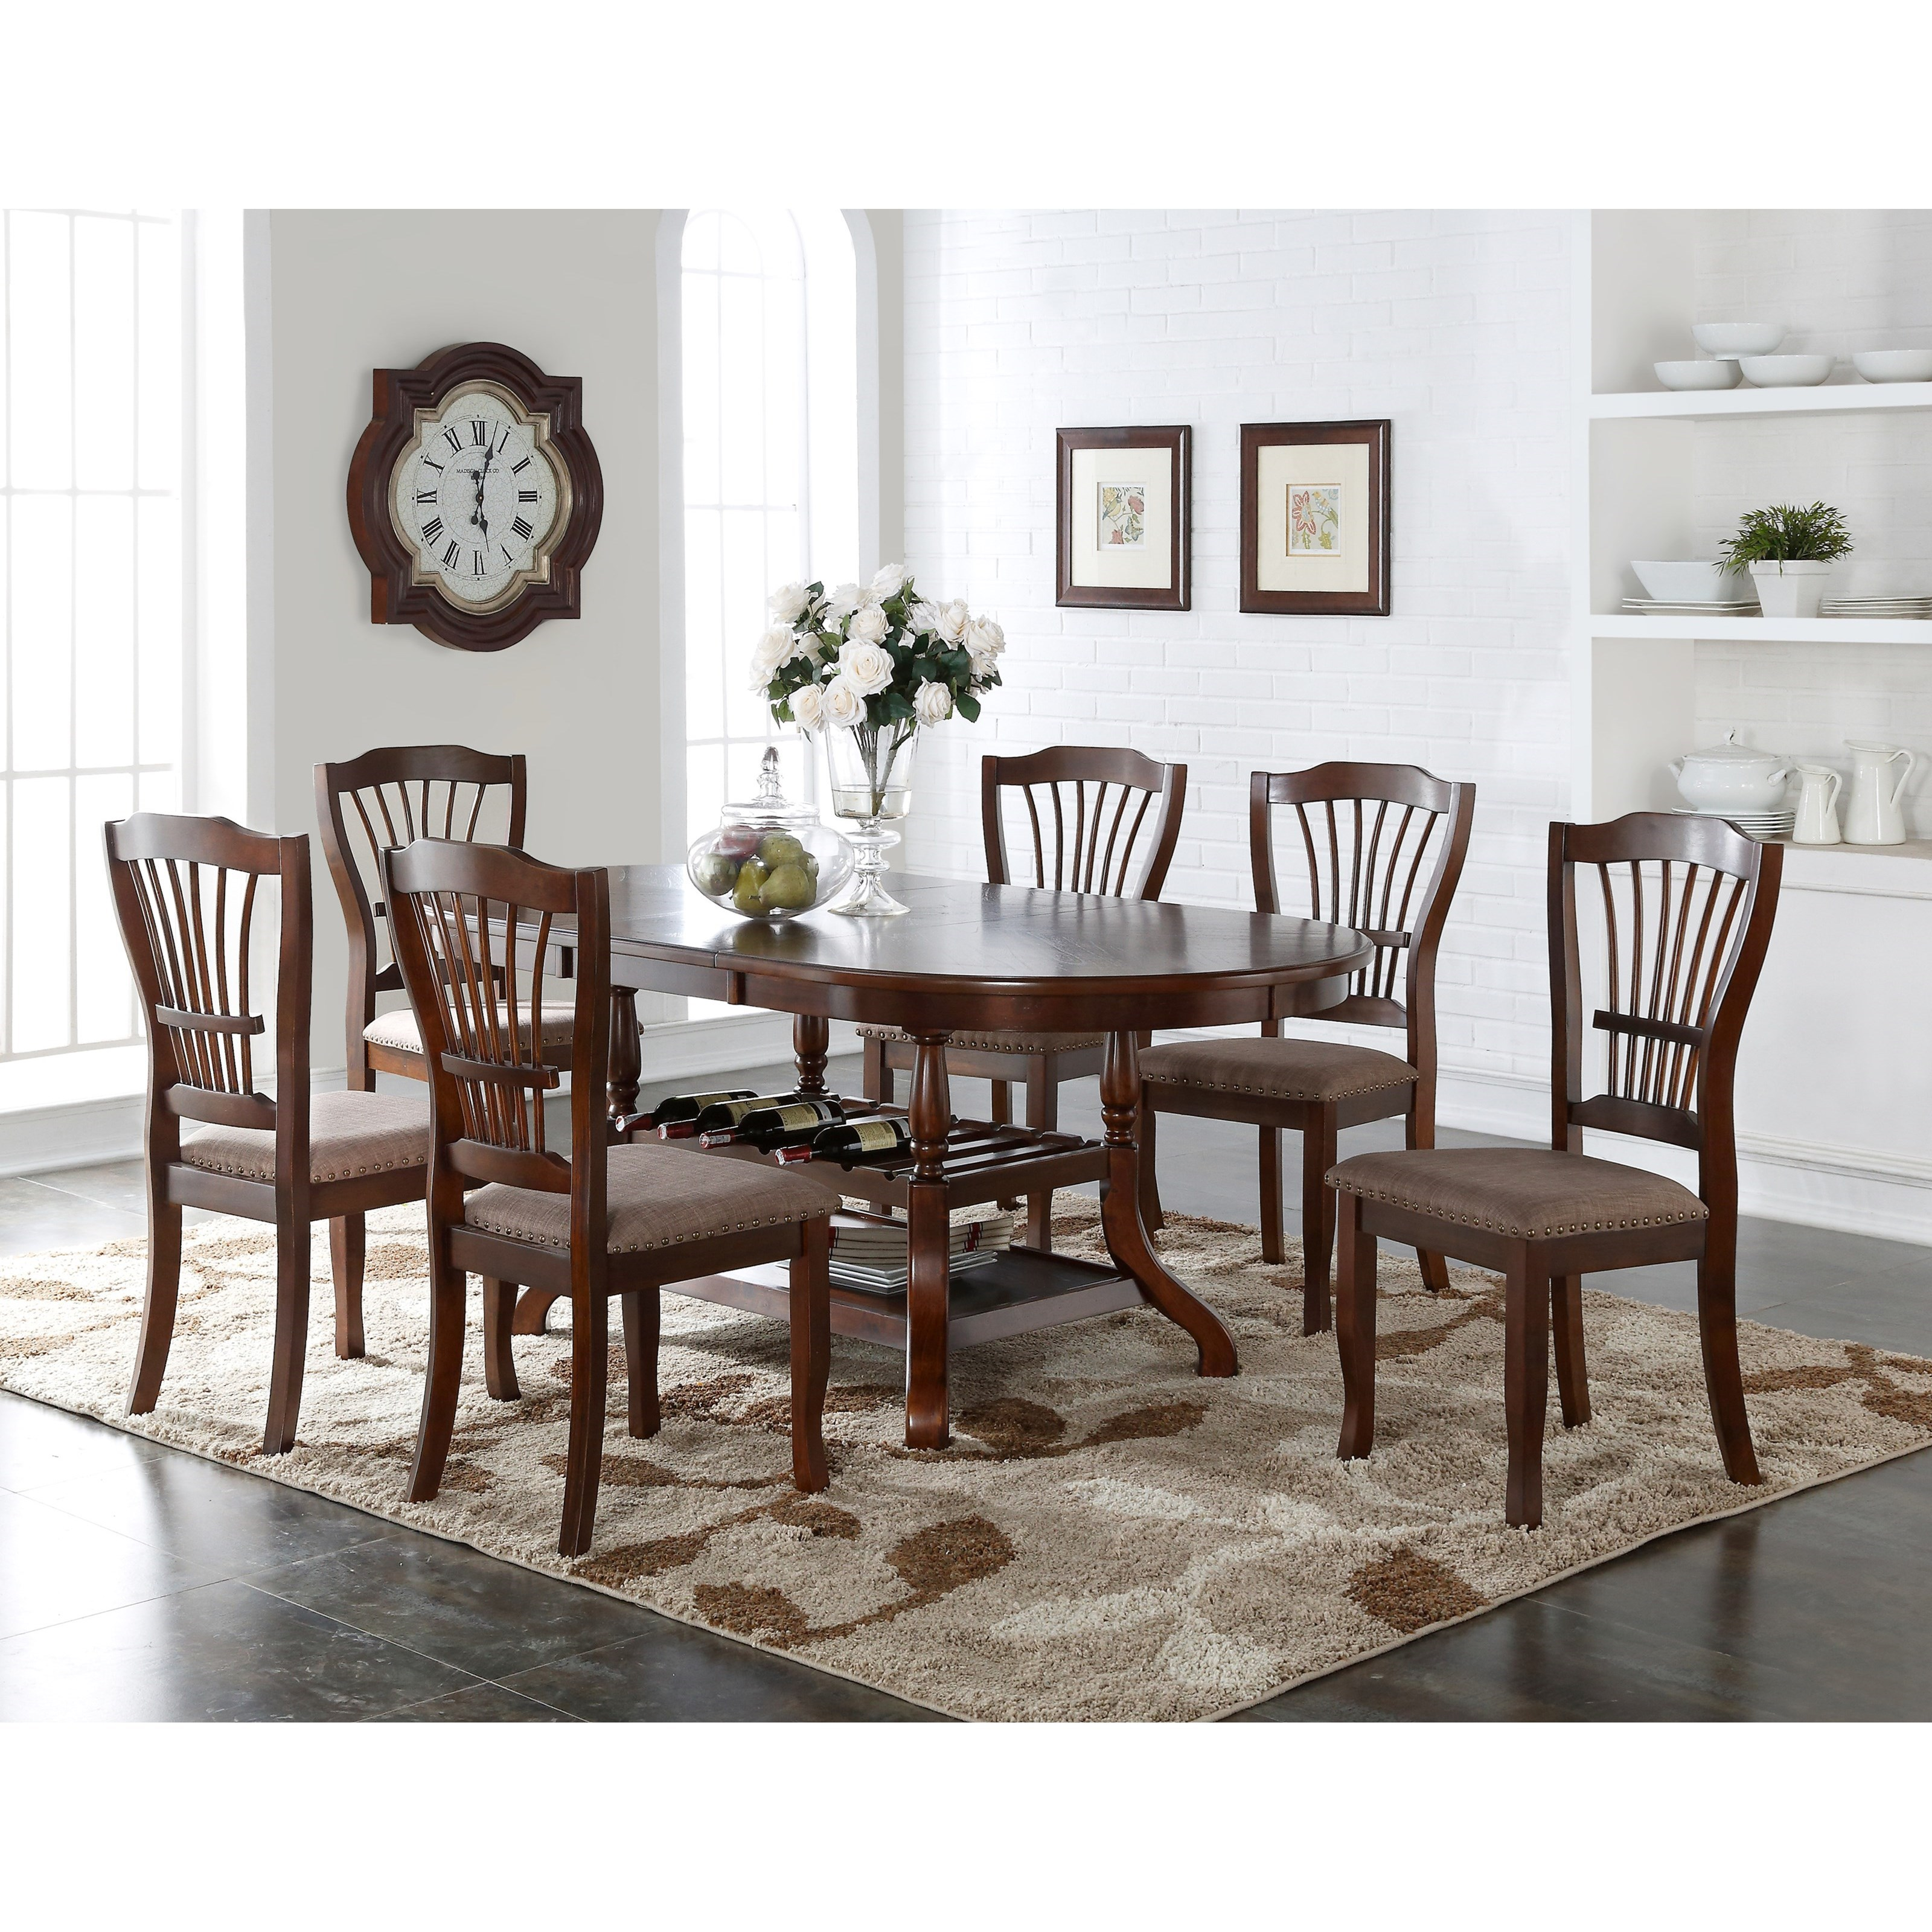 Bixby 7 Piece Dining Table Set by New Classic at Darvin Furniture